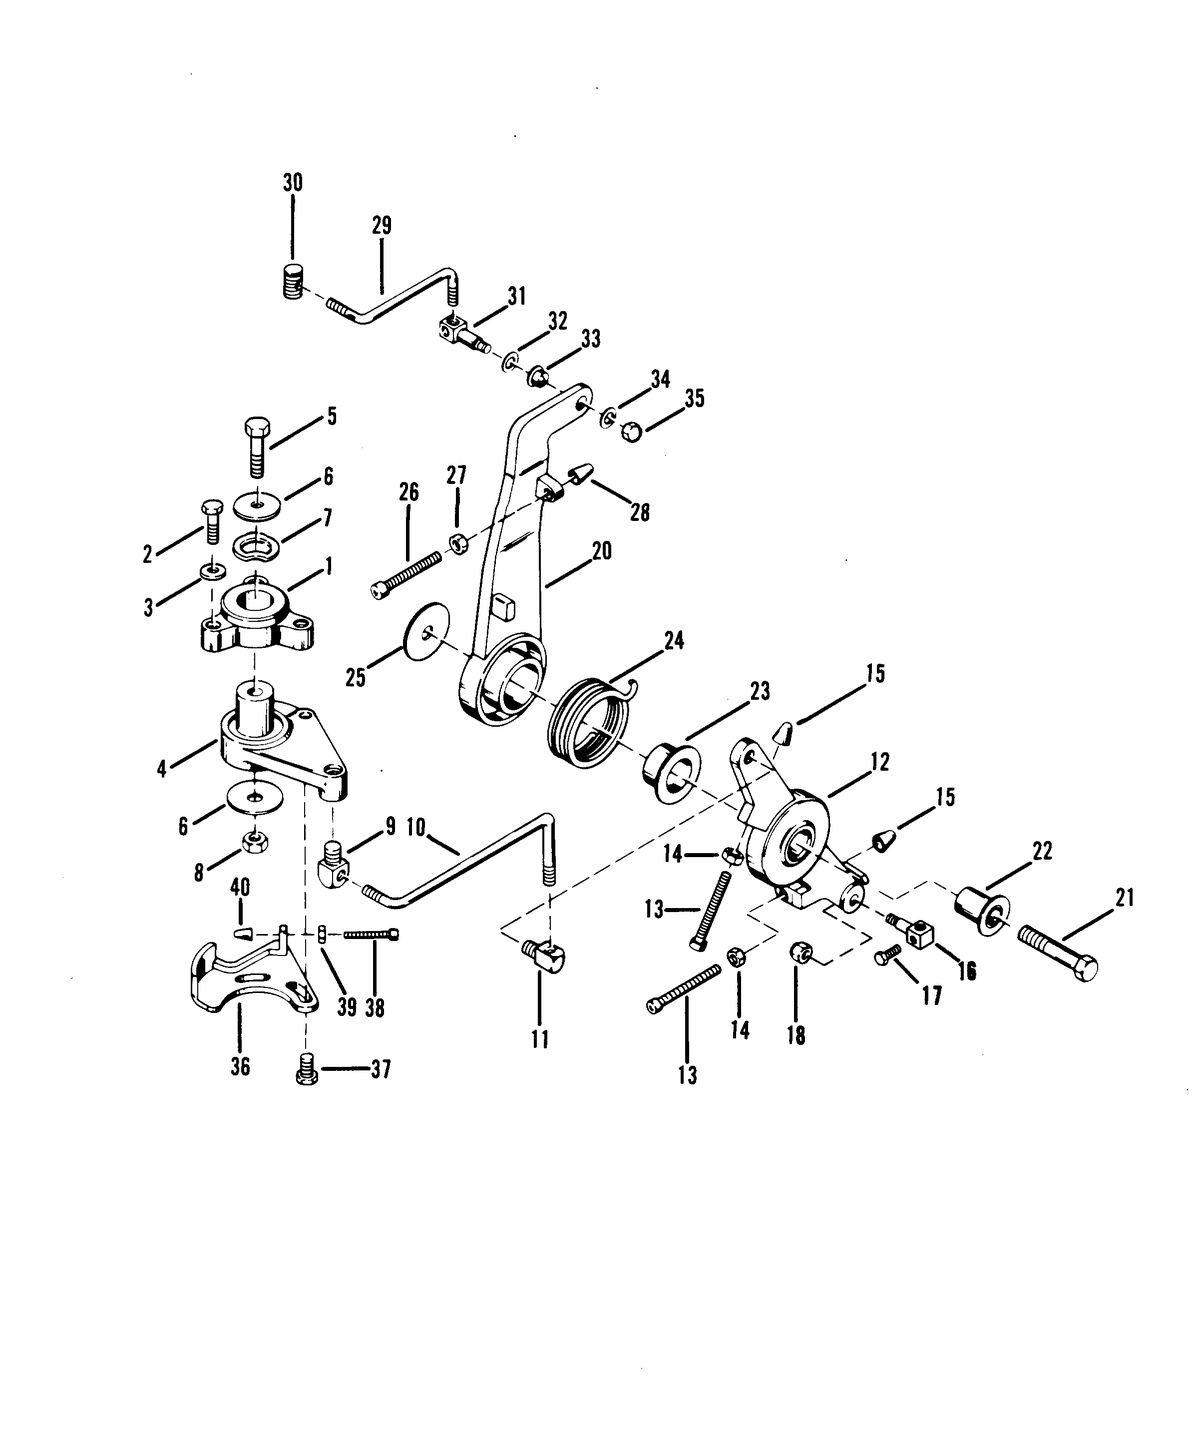 RACE OUTBOARD 44 XS THROTTLE CONTROL LINKAGE